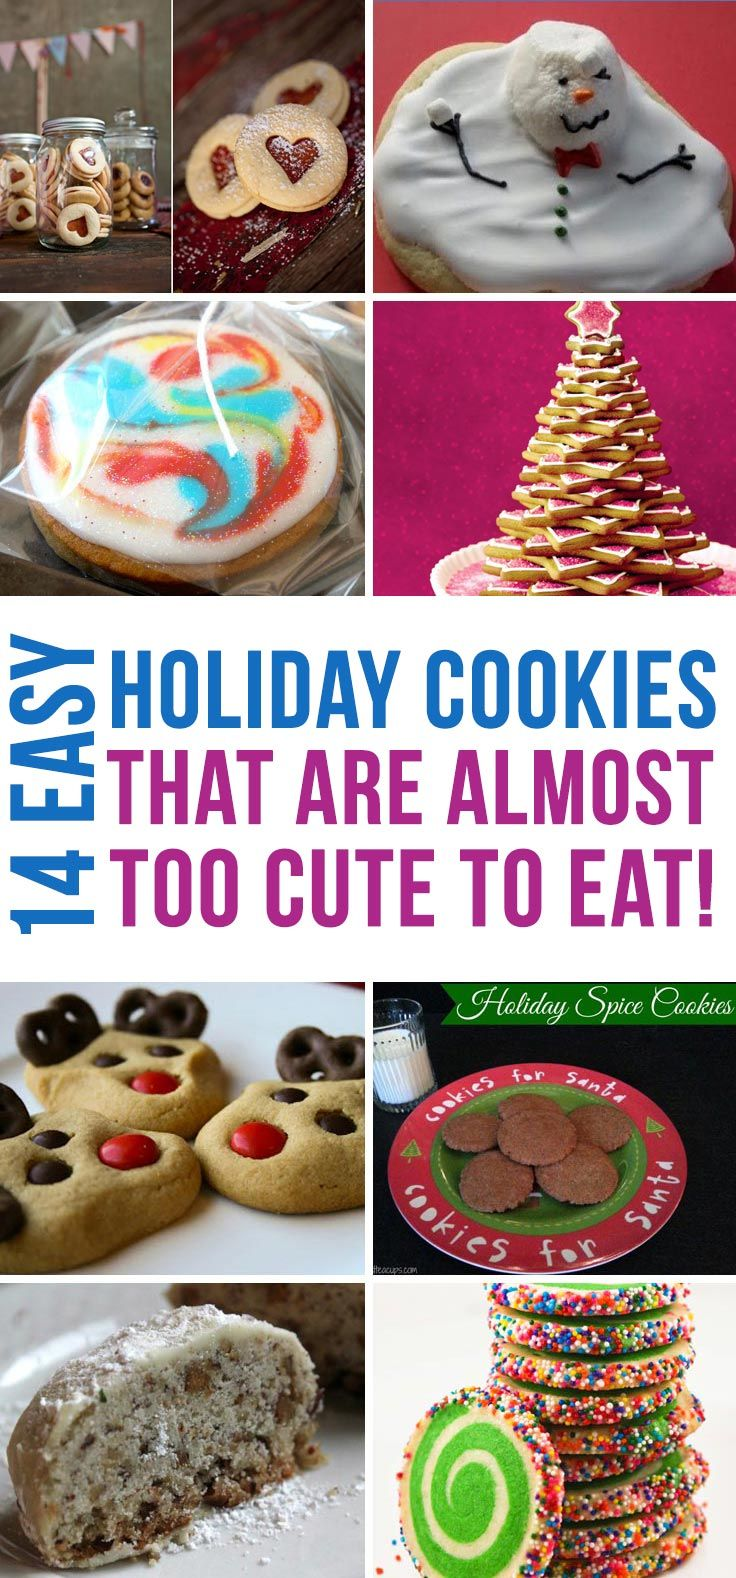 Oh my goodness these easy Holiday cookies recipes look almost too cute to eat!